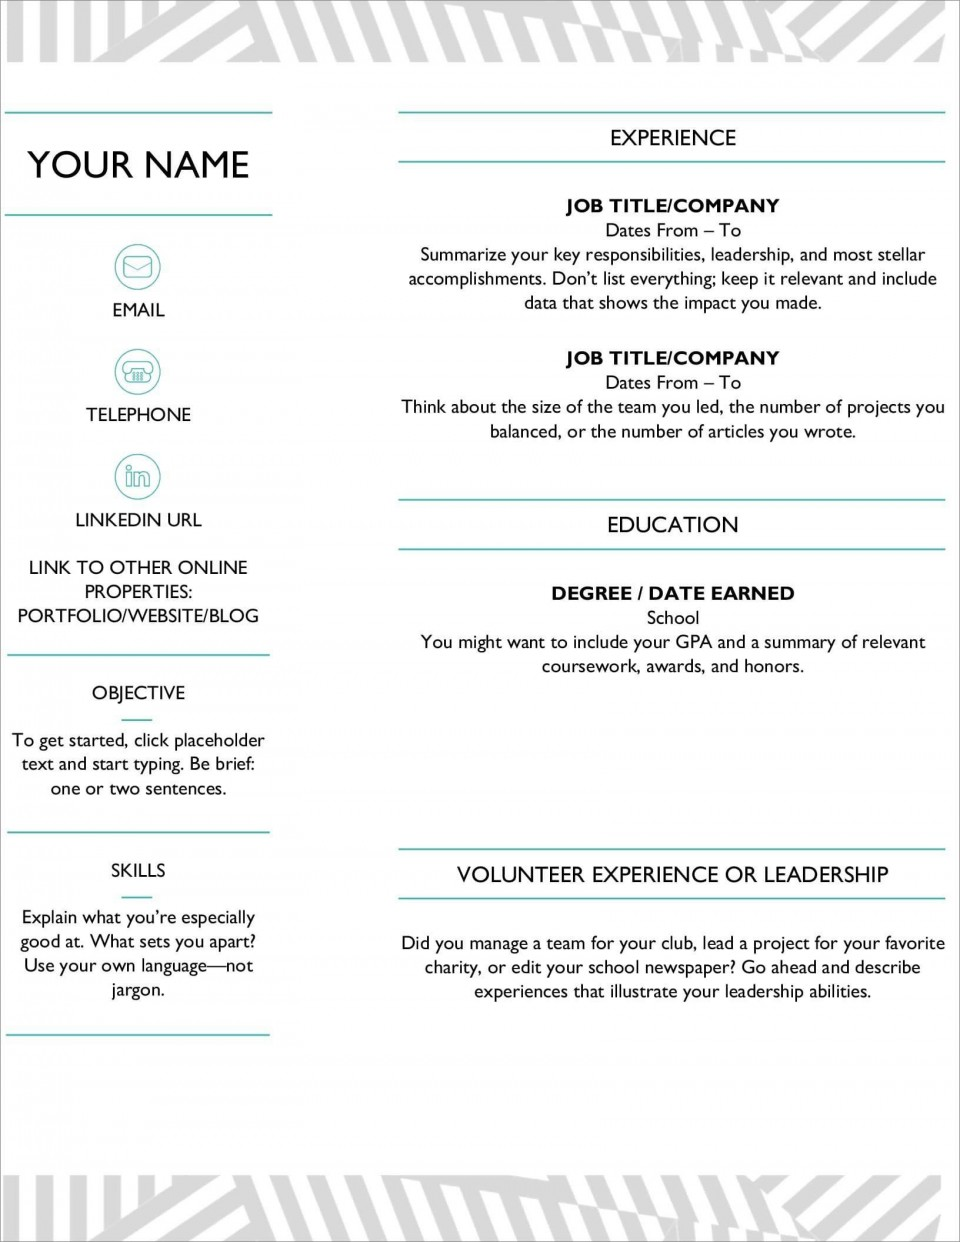 006 Marvelou Resume Microsoft Word Template Highest Clarity  Cv/resume Design Tutorial With Federal Download960